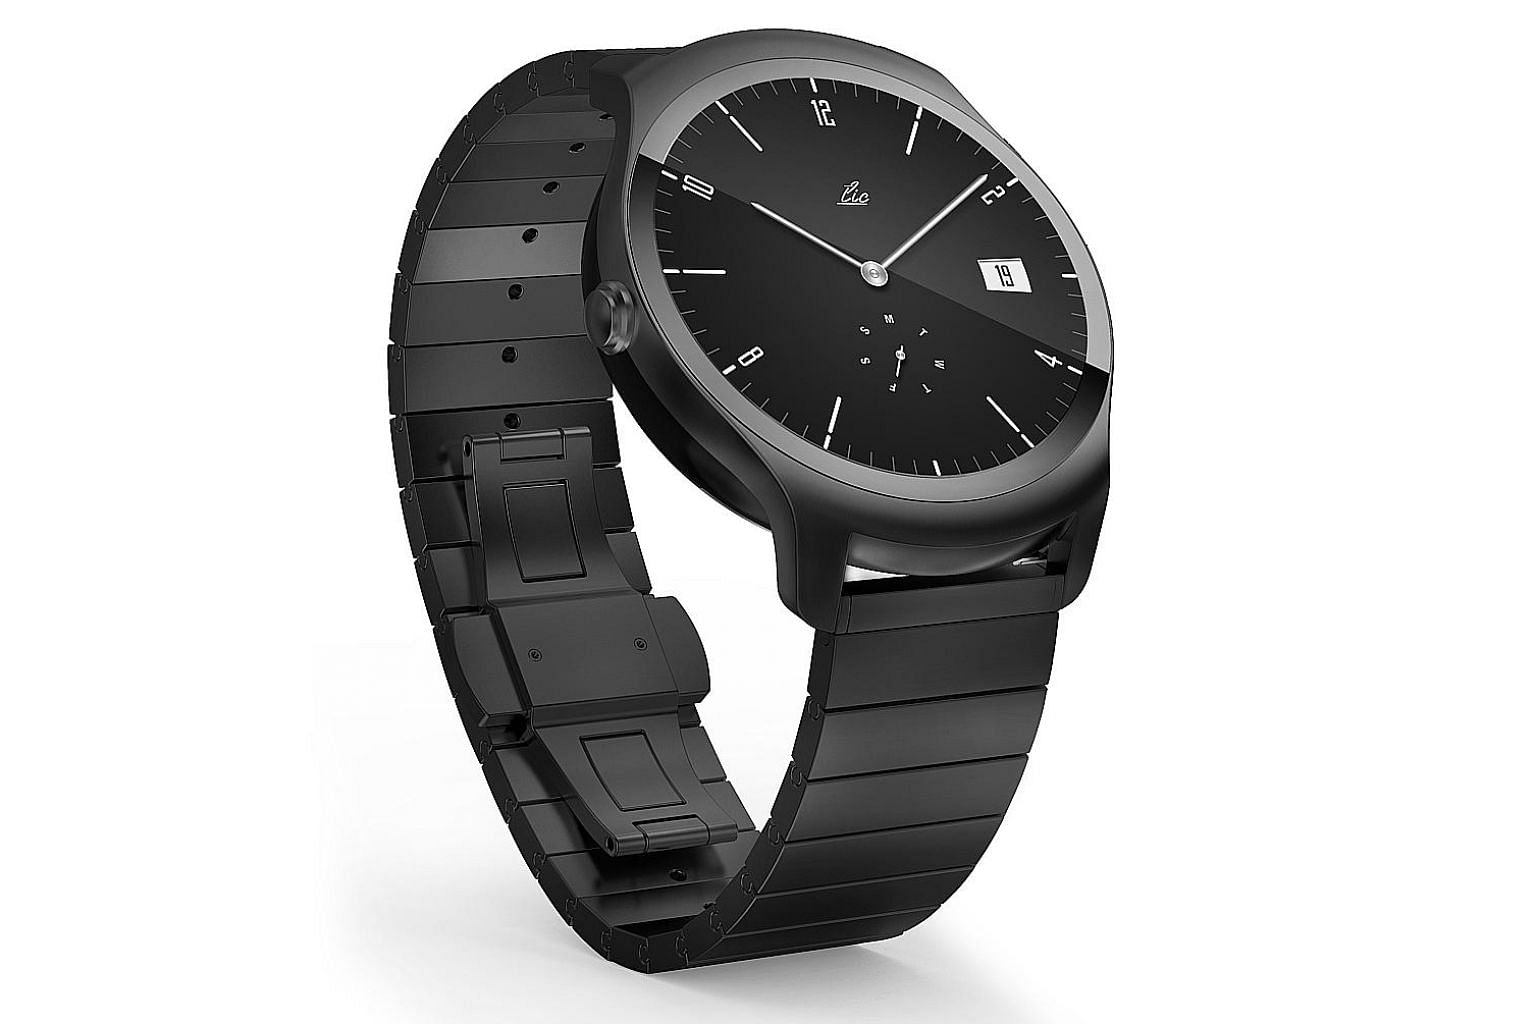 The TicWatch 2 has Mobvoi's voice assistant, Tico. But don't expect it to give witty replies to some questions like Siri does.